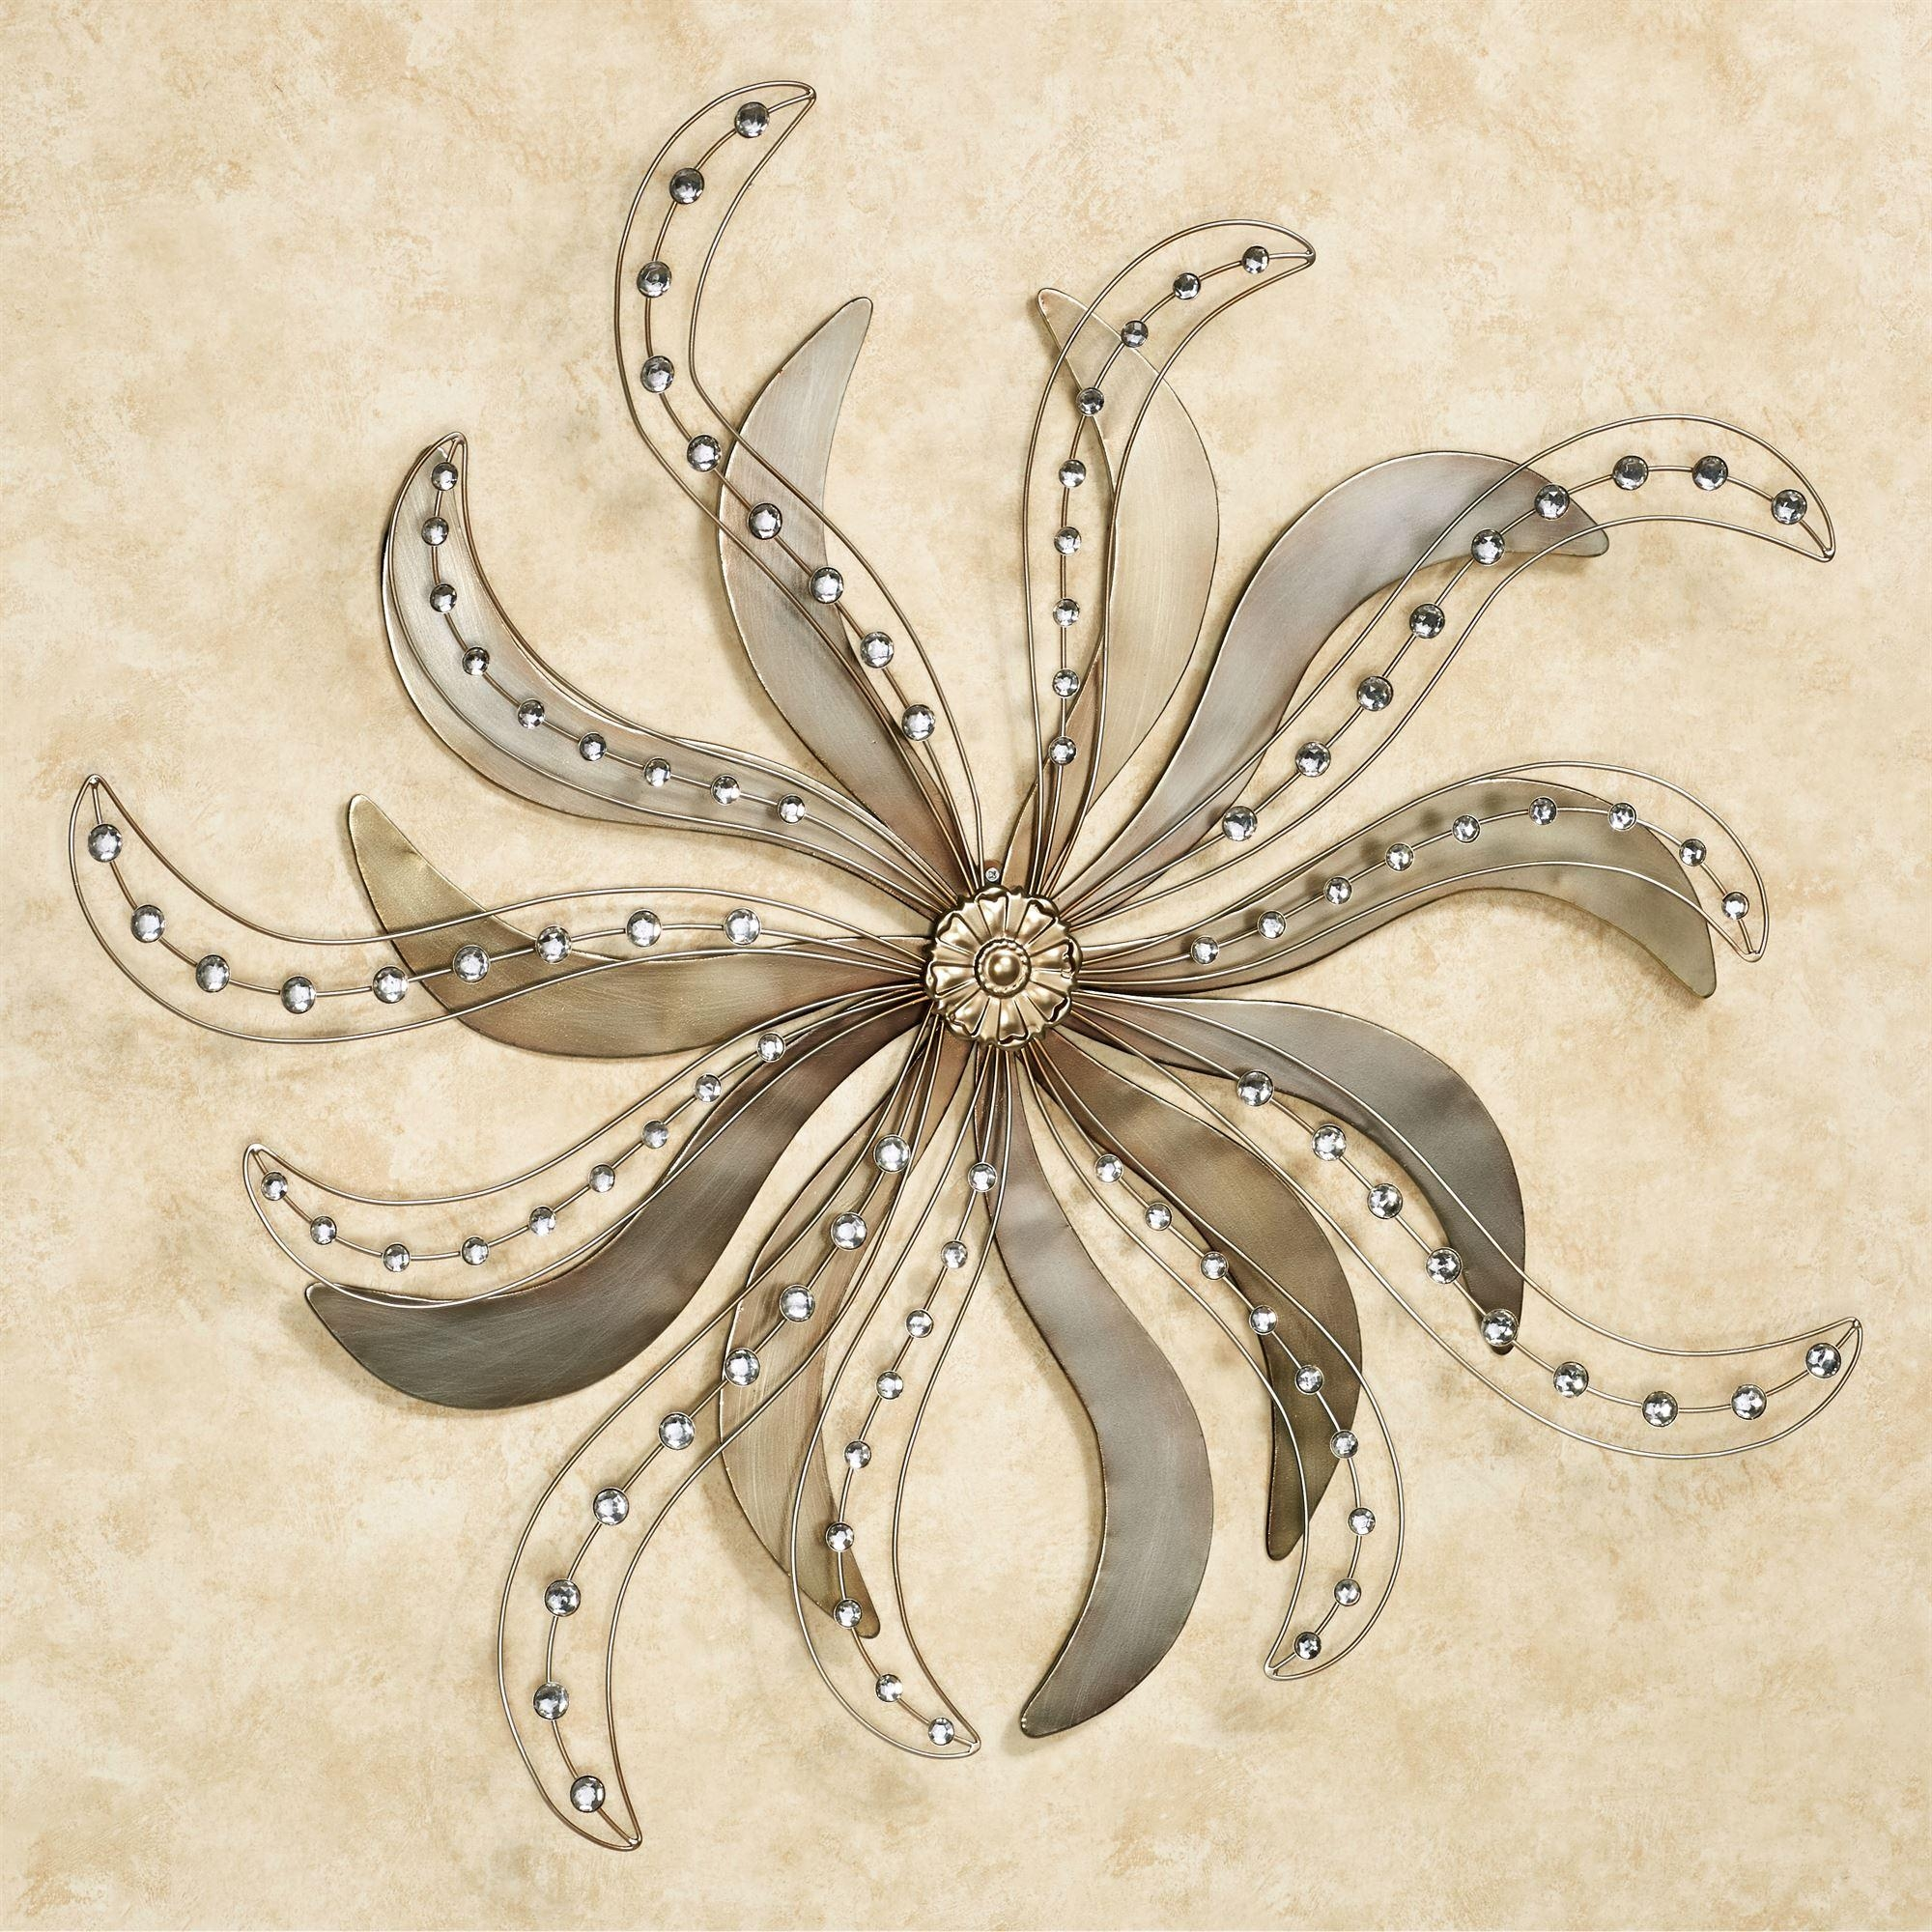 Contemporary Metal Wall Art Sculptures | Touch Of Class Throughout Jeweled Metal Wall Art (Image 4 of 20)